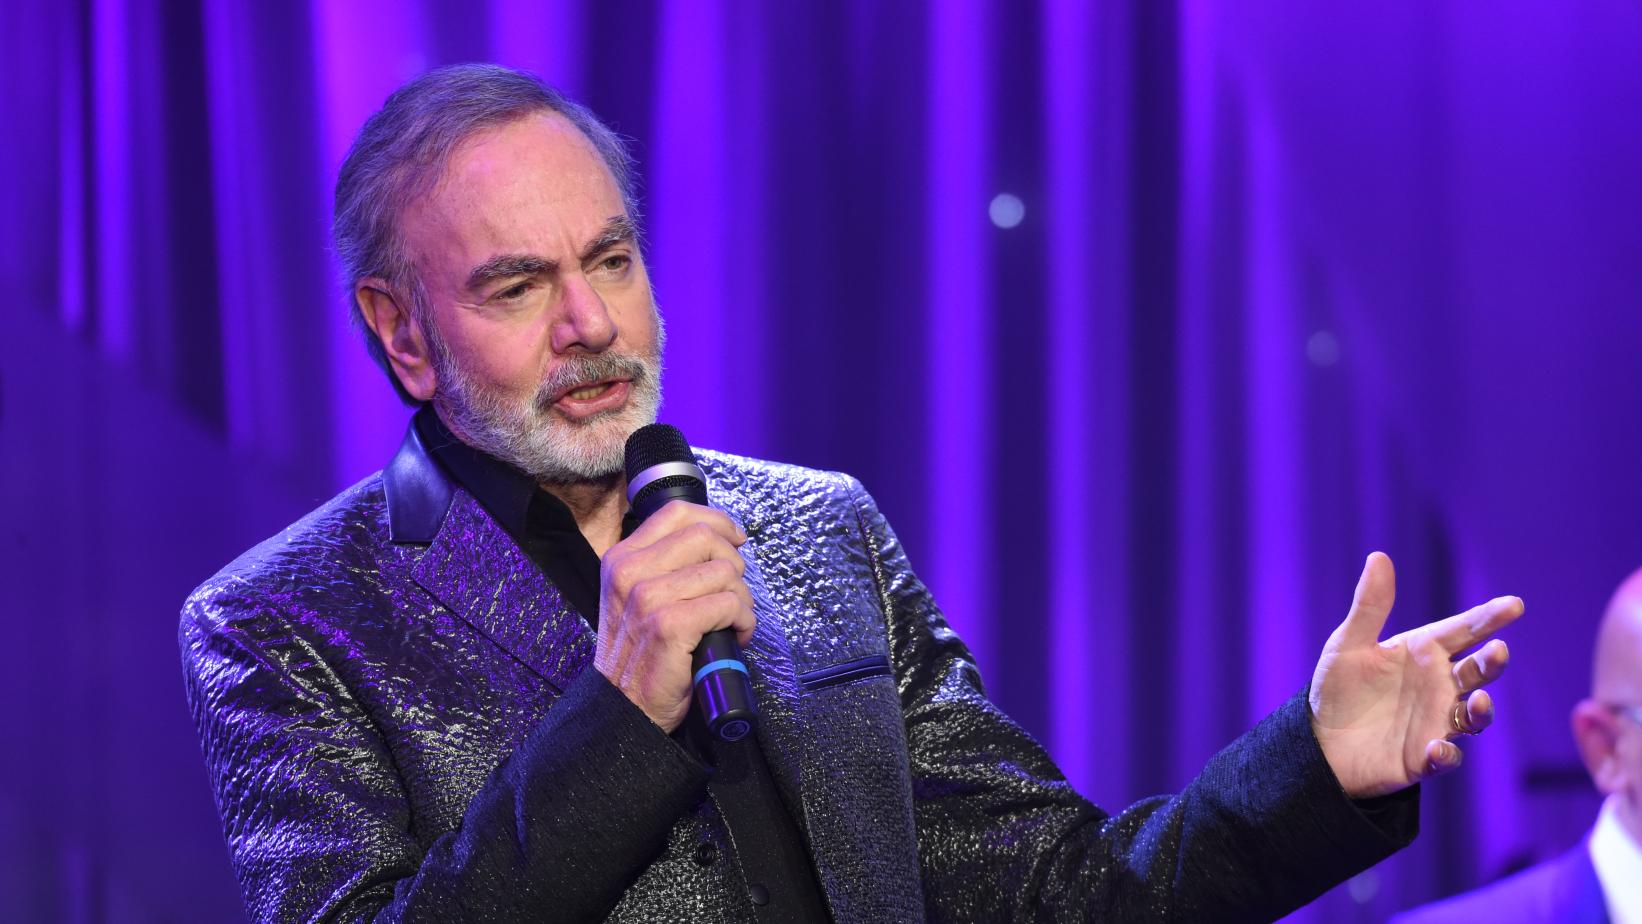 Neil Diamond performs at the Pre-GRAMMY Gala in 2017